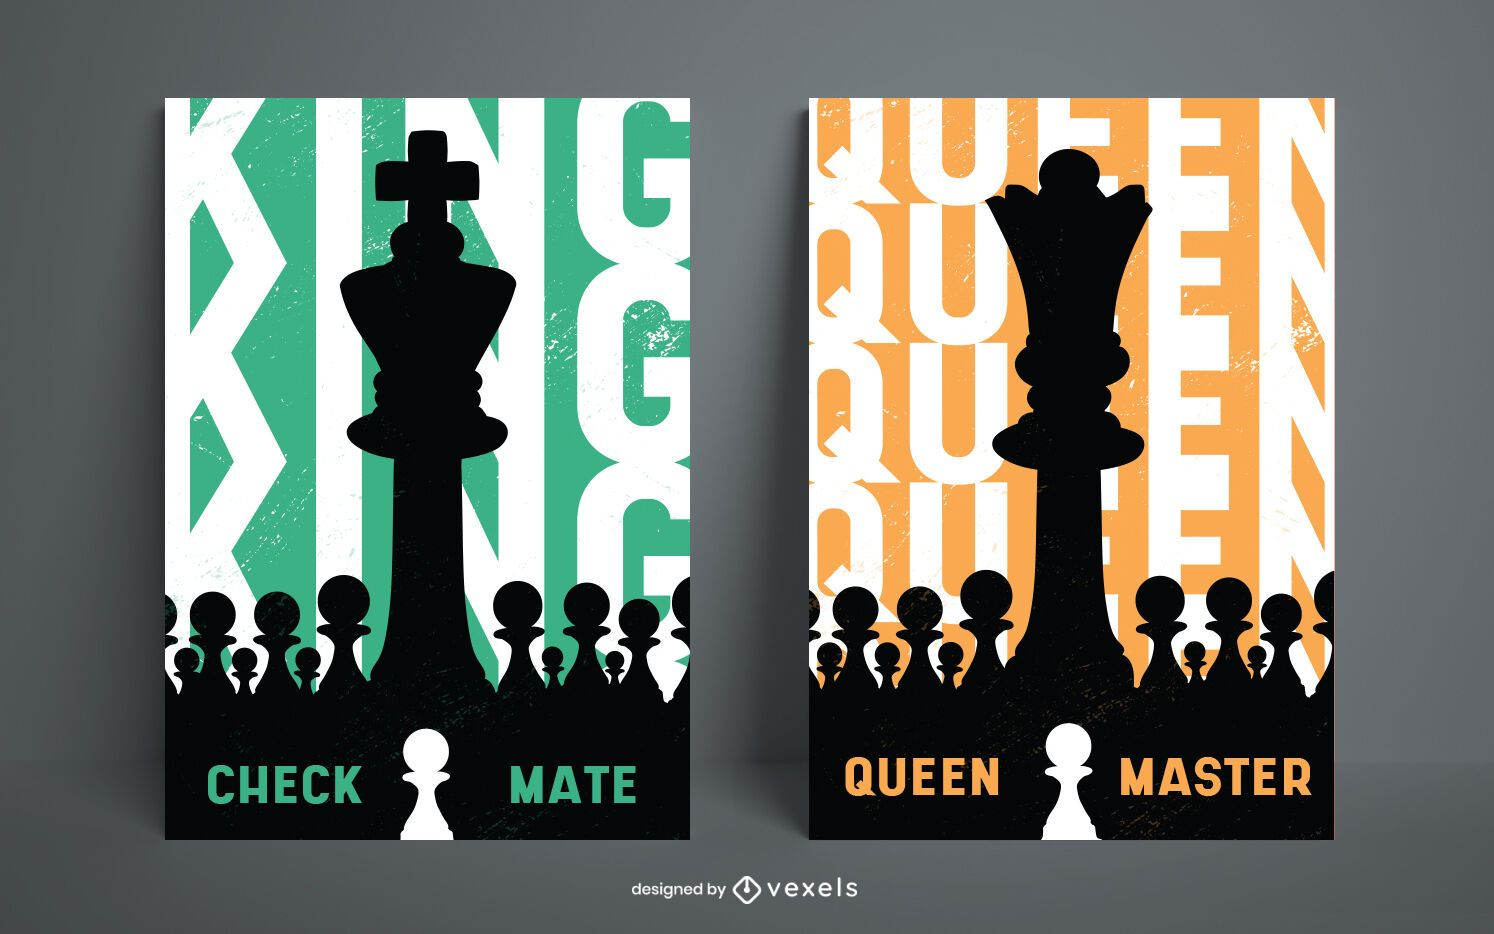 Chess king and queen game pieces poster design